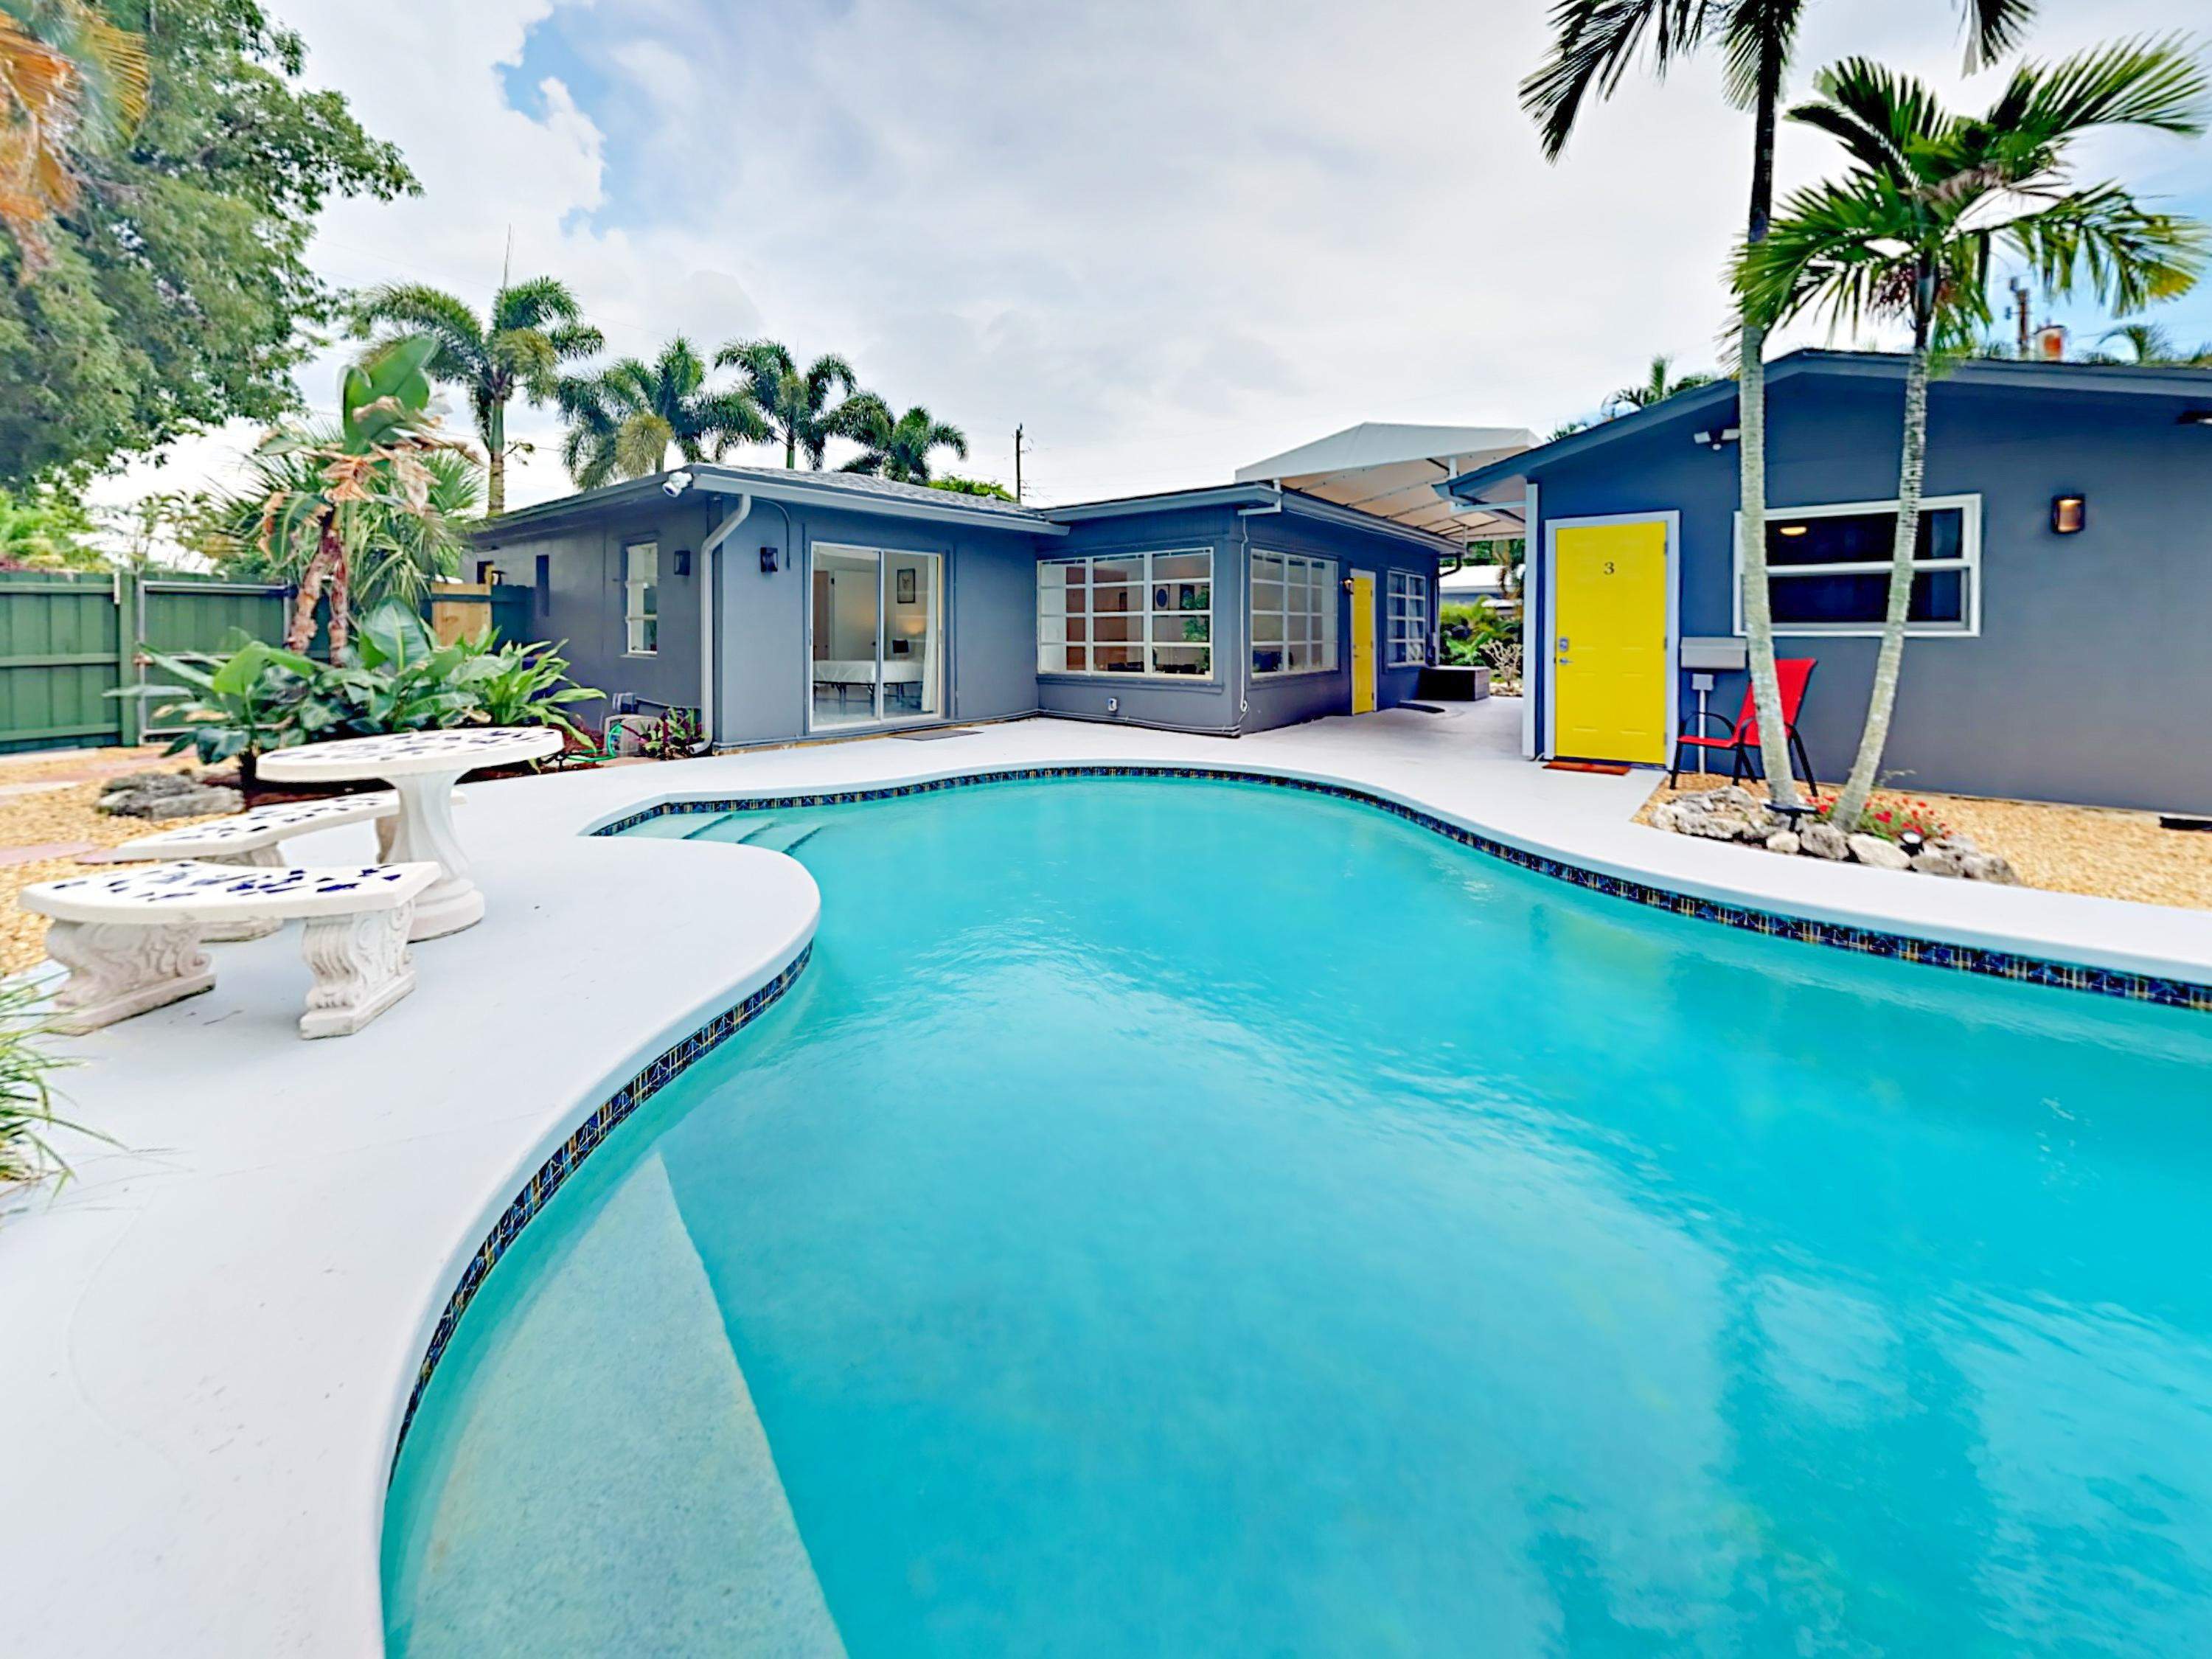 Welcome to Wilton Manors! Your rental is professionally managed by TurnKey Vacation Rentals.